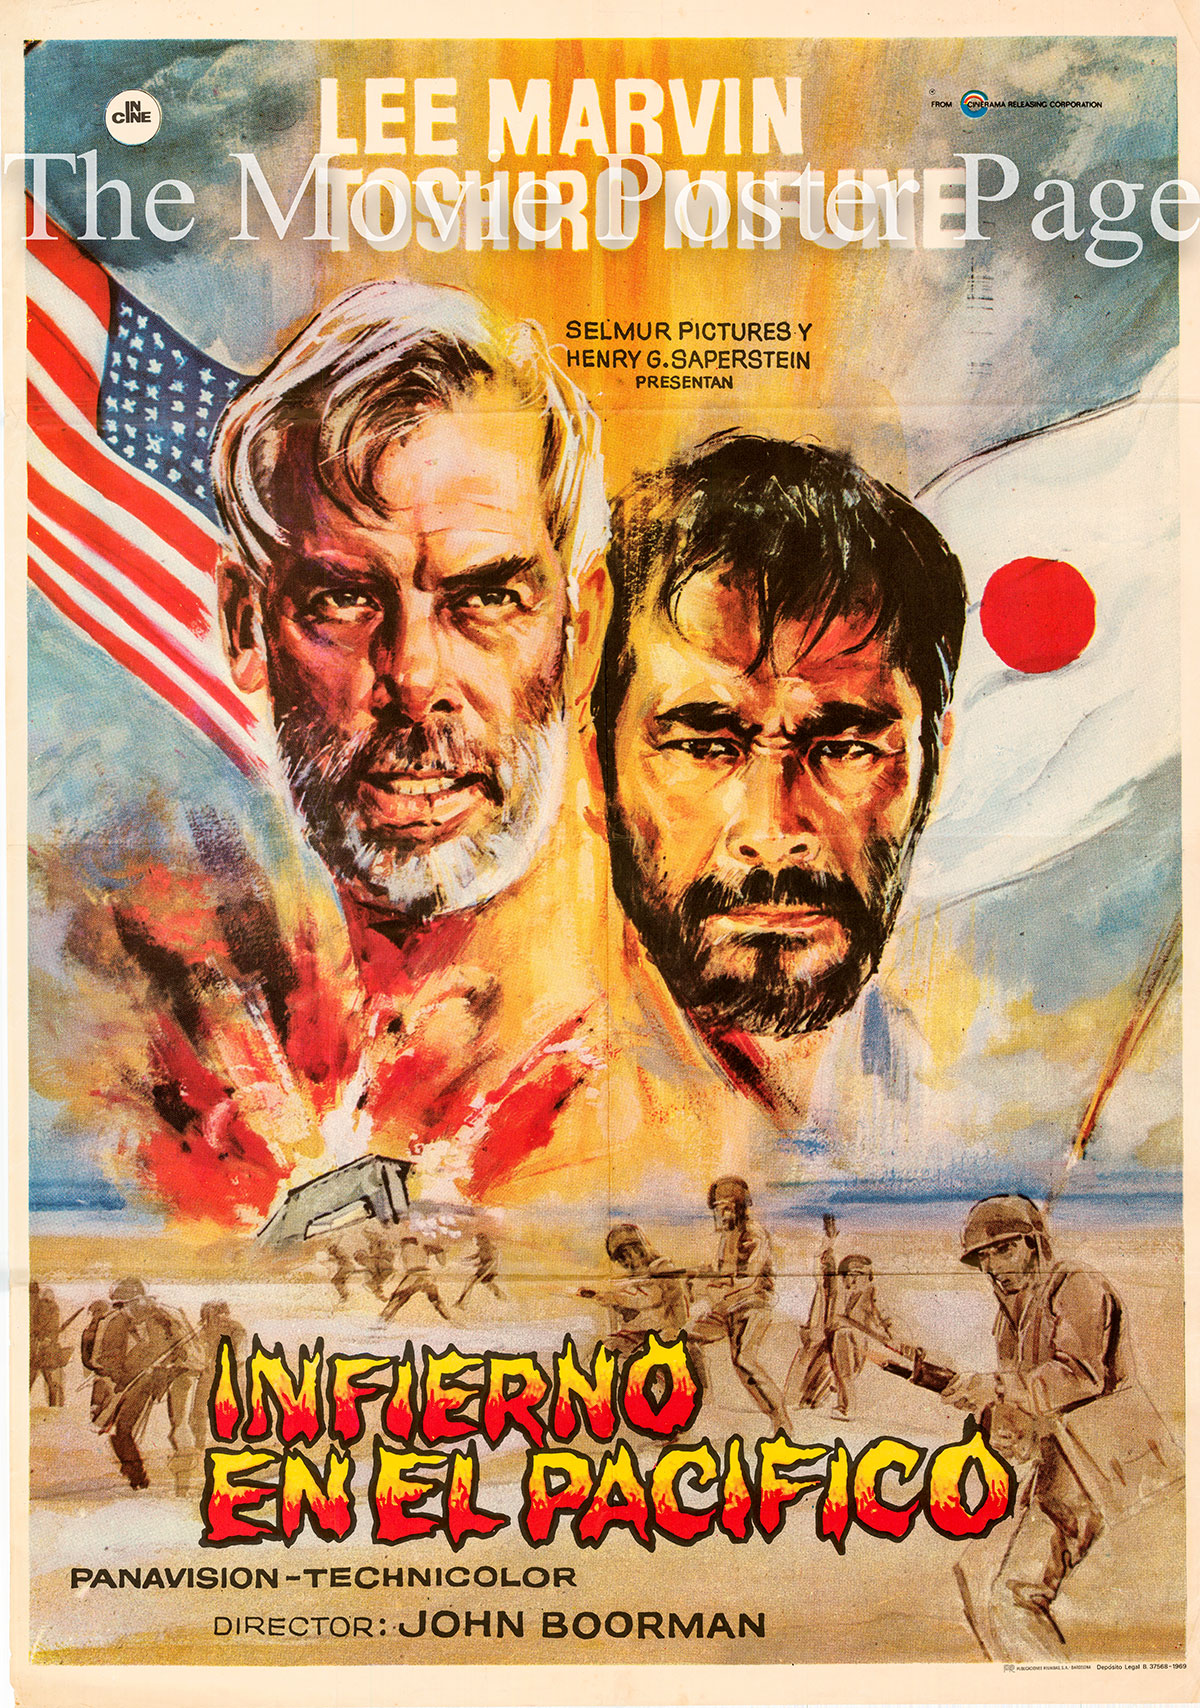 Pictured is a Spanish pormotional poster for the 1968 John Boorman film Hell in the Pacific starring Lee Marvin.